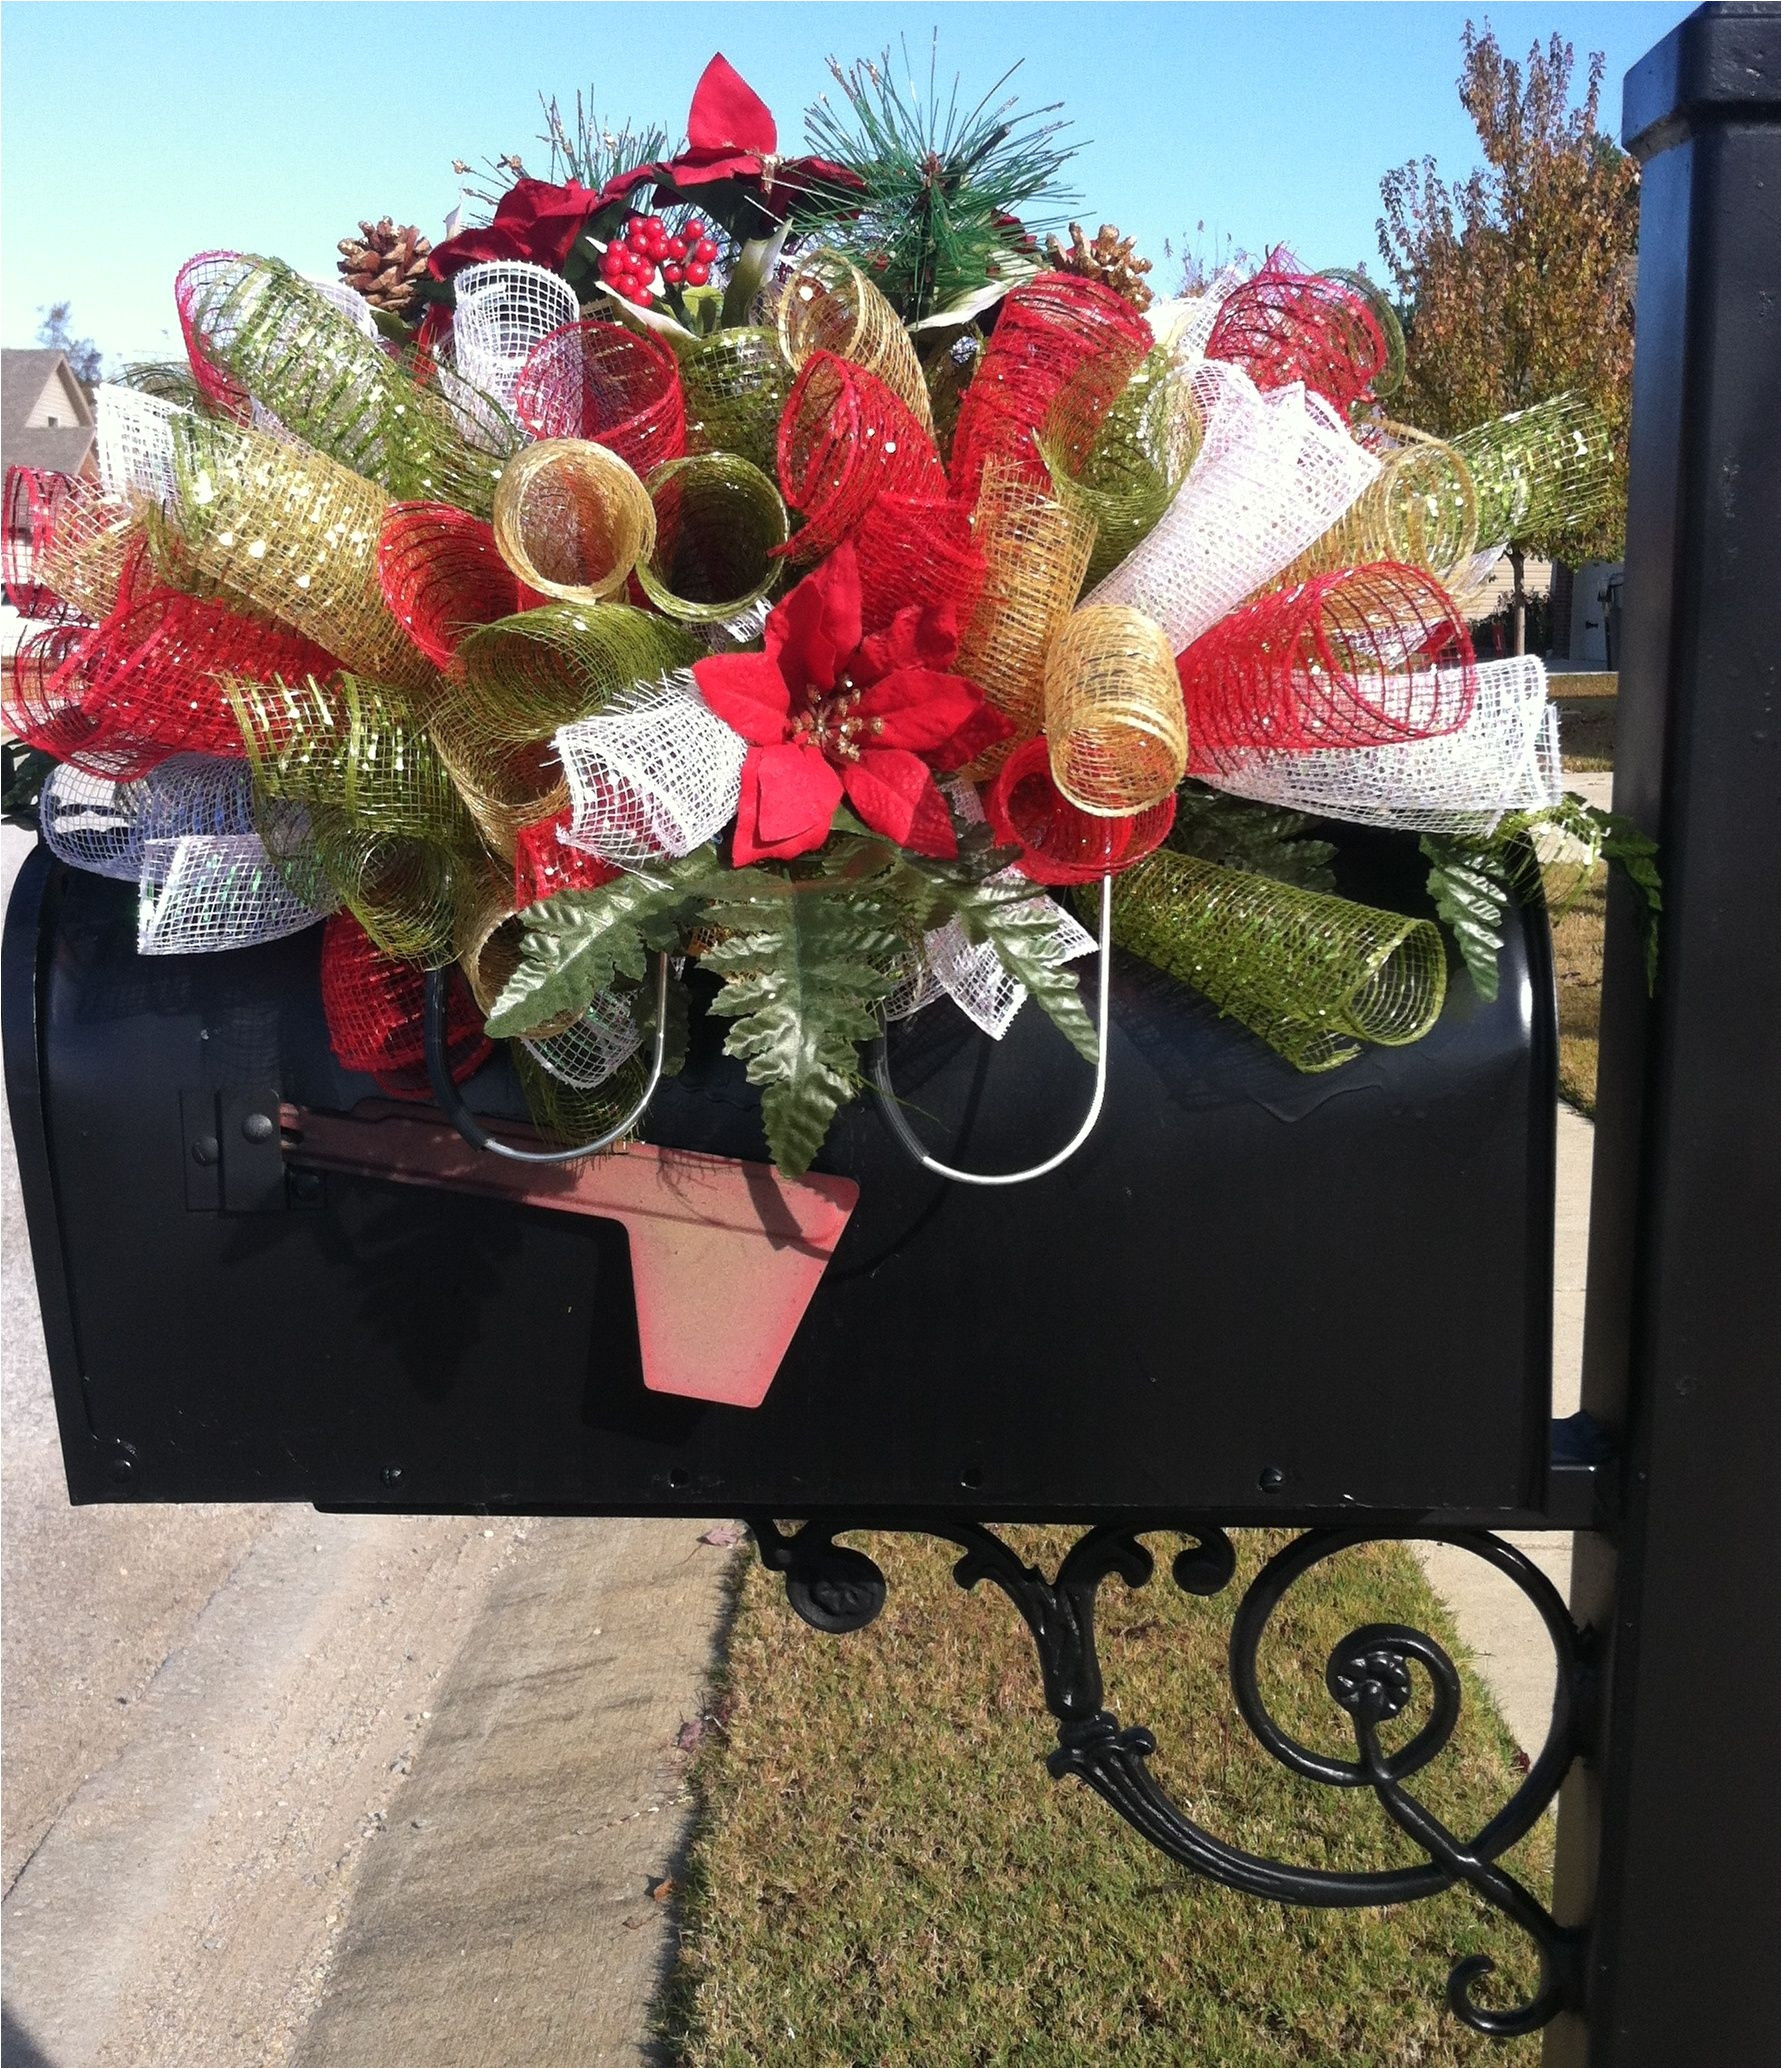 Stay In the Vase Cemetery Flowers Of Cemetery Grave Decoration Ideas Holiday Custom order for Christmas within Cemetery Grave Decoration Ideas Holiday Custom order for Christmas Saddle Use as A Mailbox Table